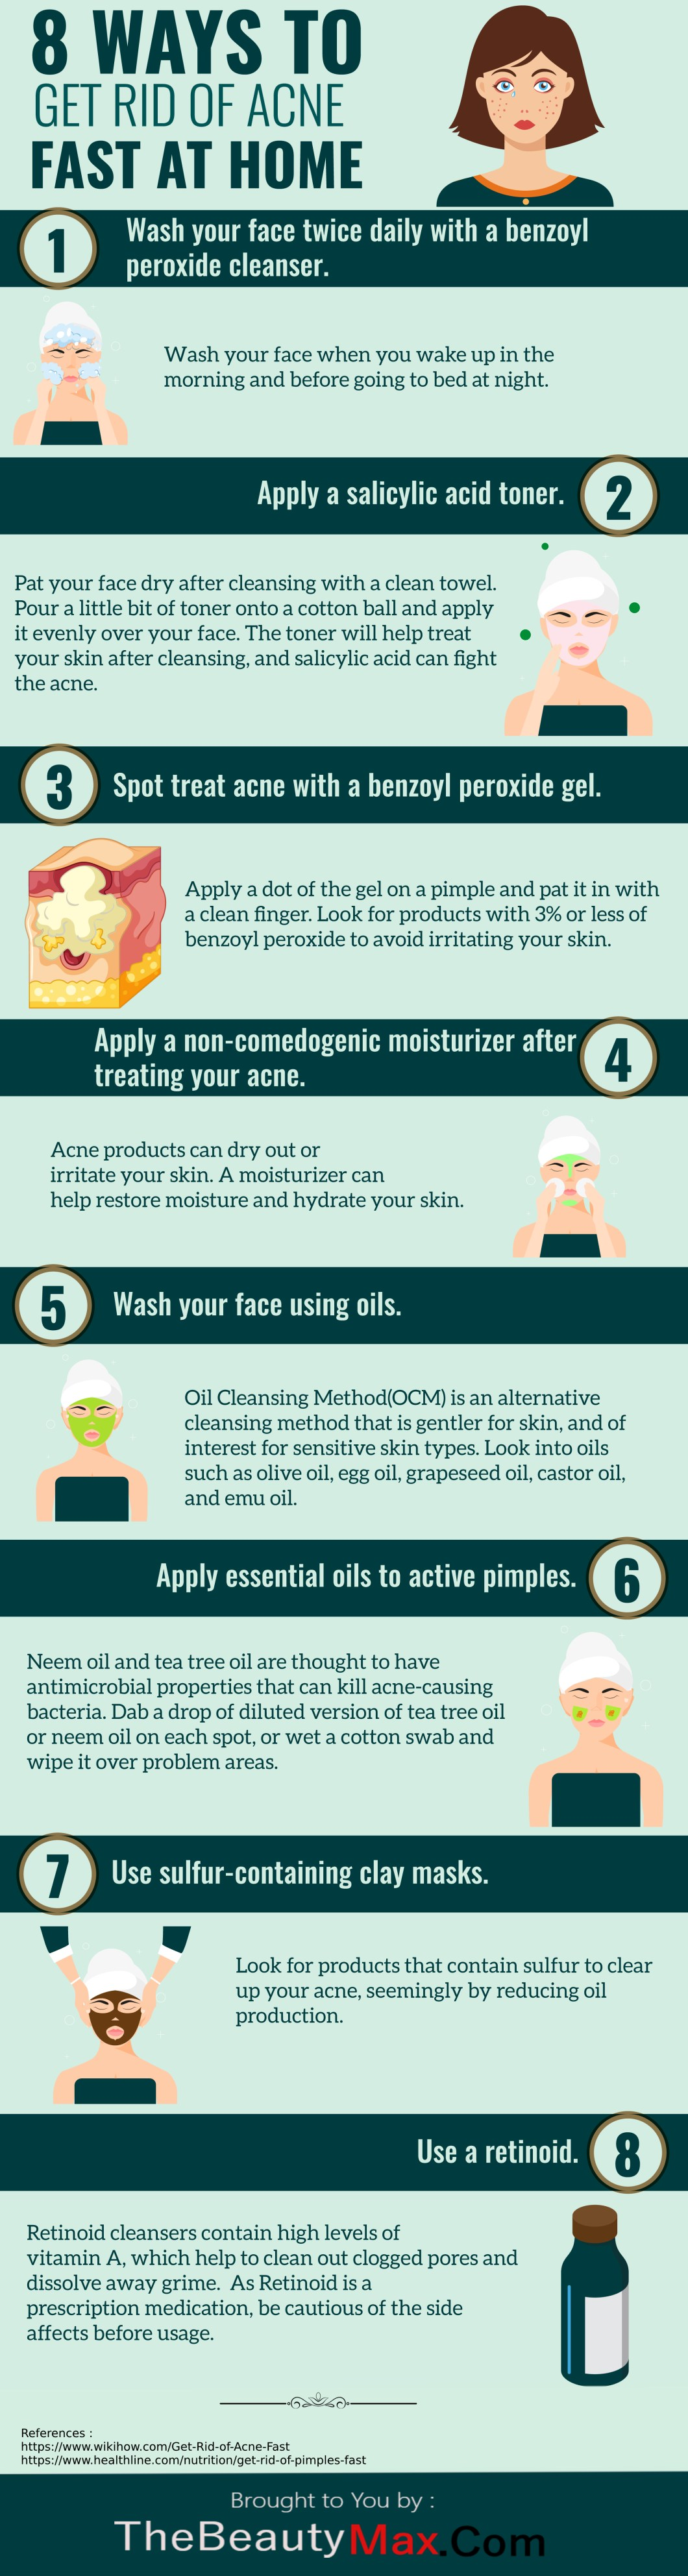 8 Home Treatments to Get Rid of Acne Fast - Infographic